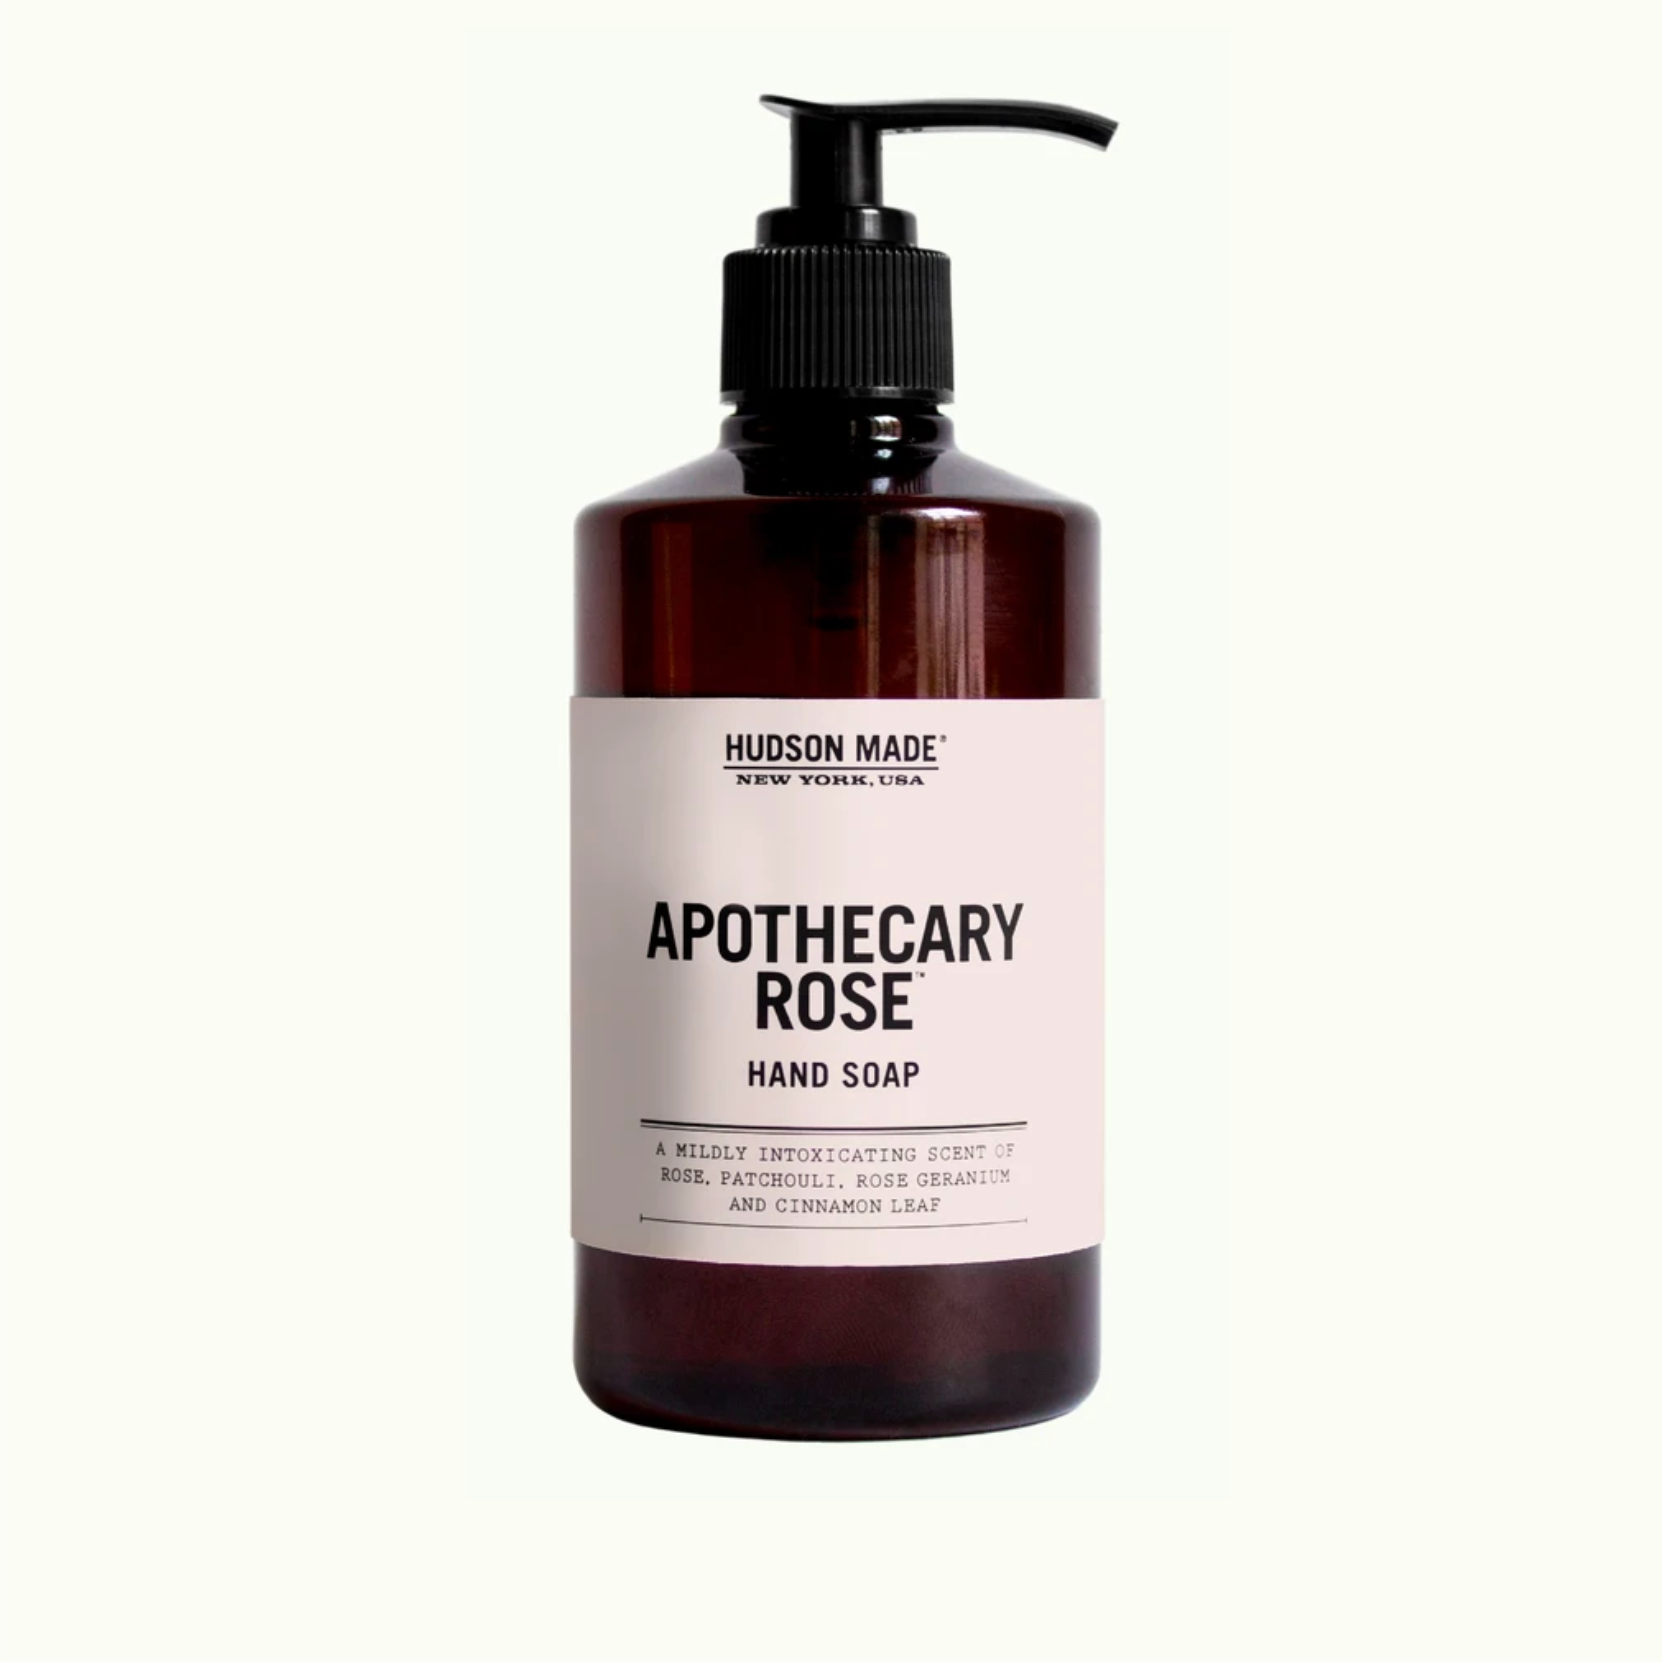 Apothecary rose liquid hand soap by hudson made